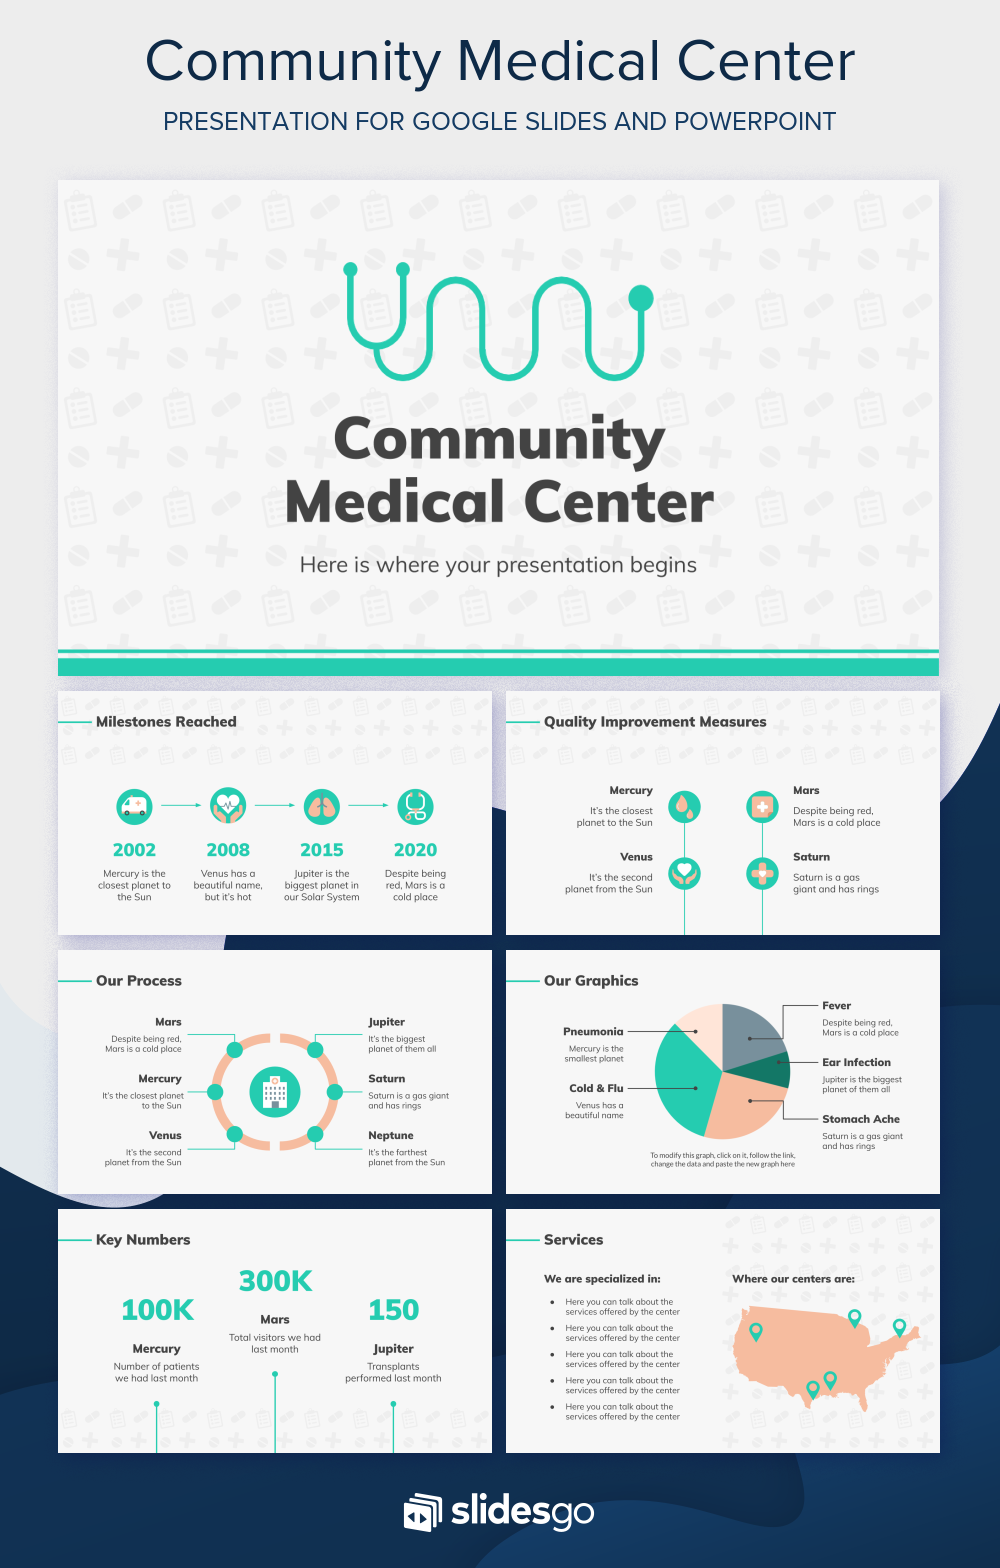 Present Your Community Medical Center With Our Free Google Slides Theme And Ppt File In 2020 Google Slides Themes Medical Center Google Slides